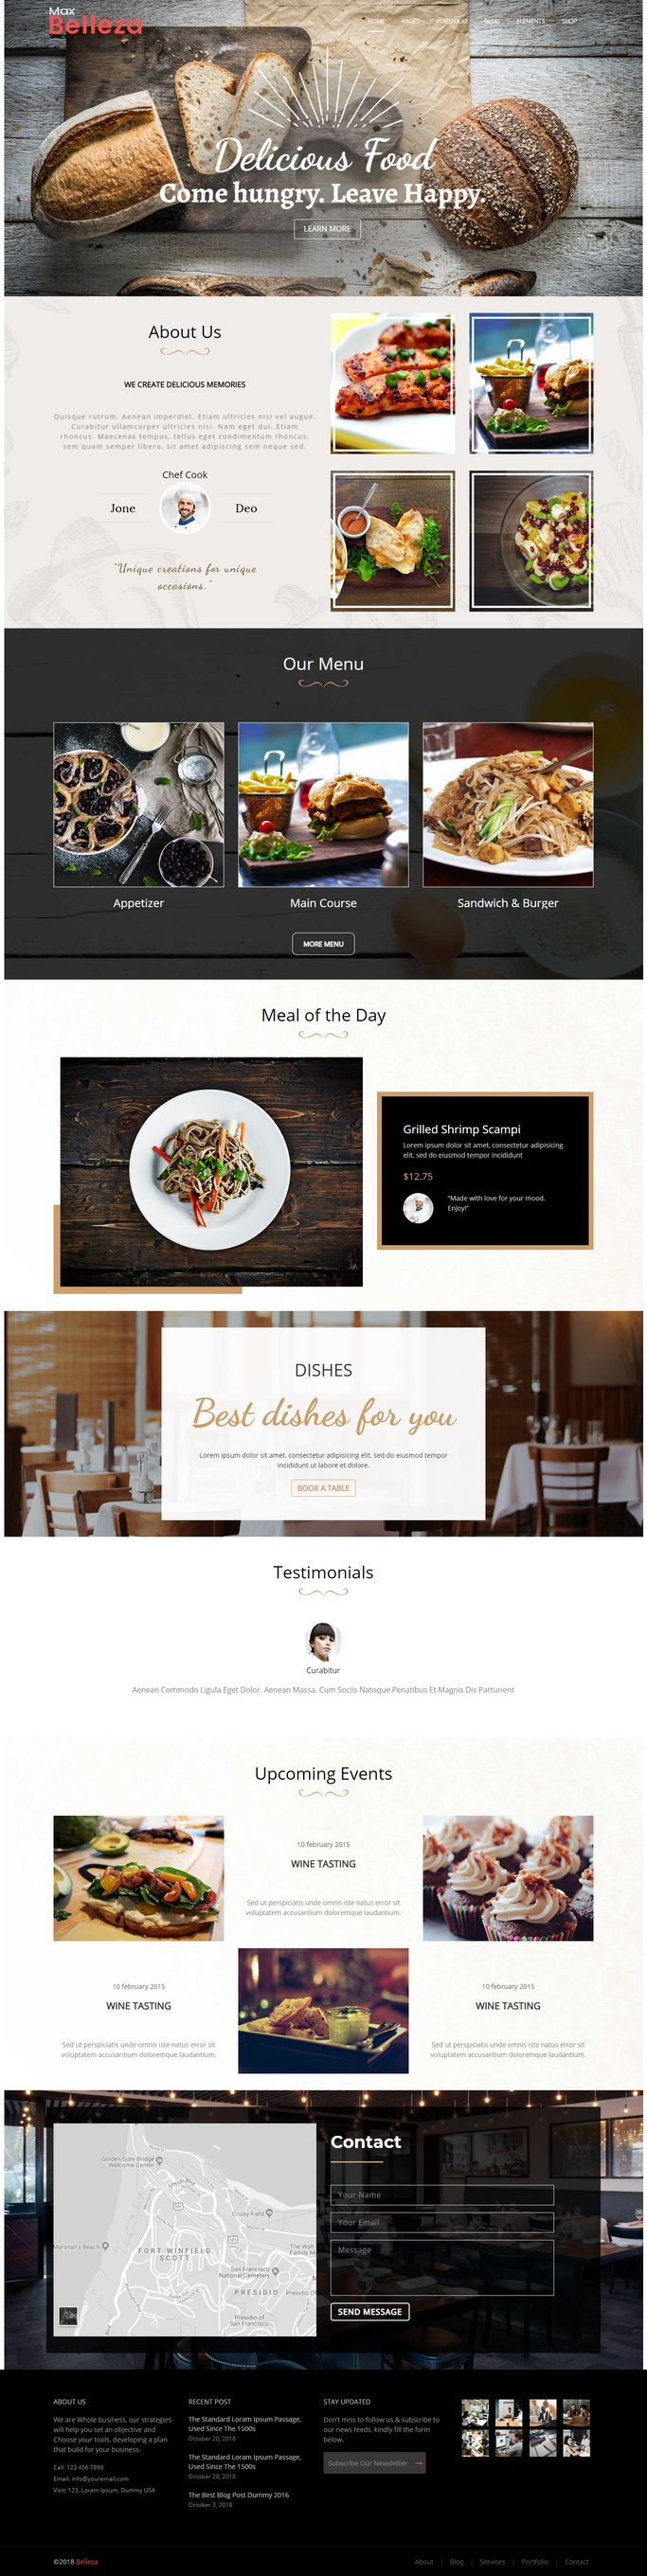 screencapture-wpthemes-multipurposethemes-belleza-restaurant-2018-10-26-13_37_28